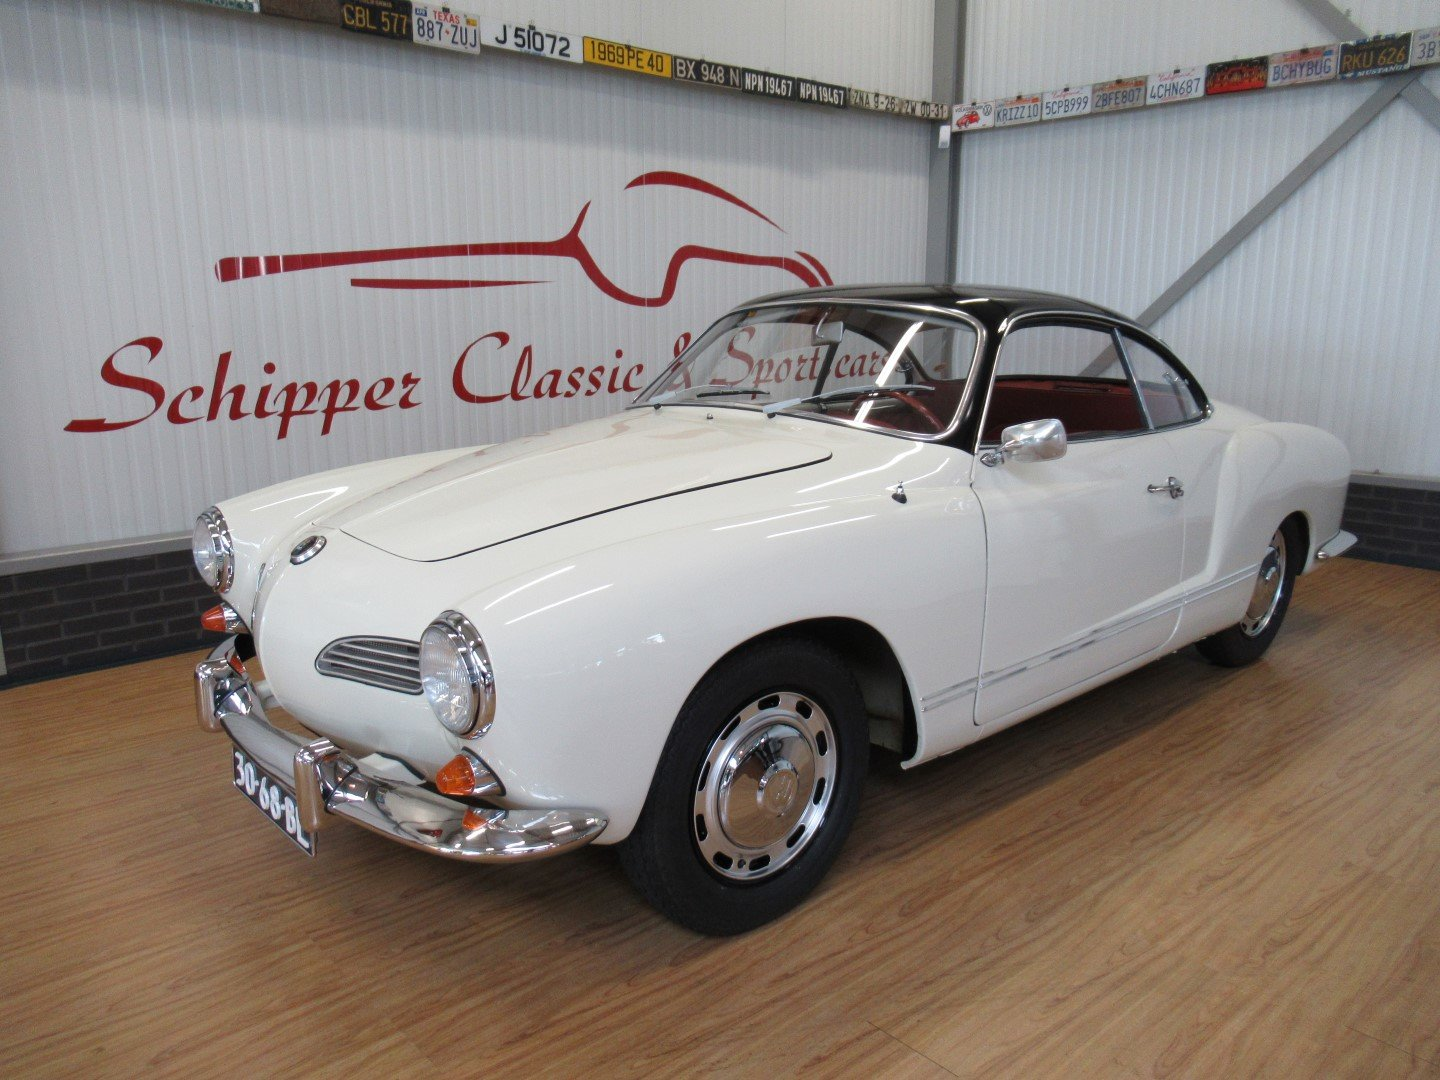 1966 Volkswagen Karmann Ghia type14 Pigalle Special edition!! For Sale (picture 1 of 6)